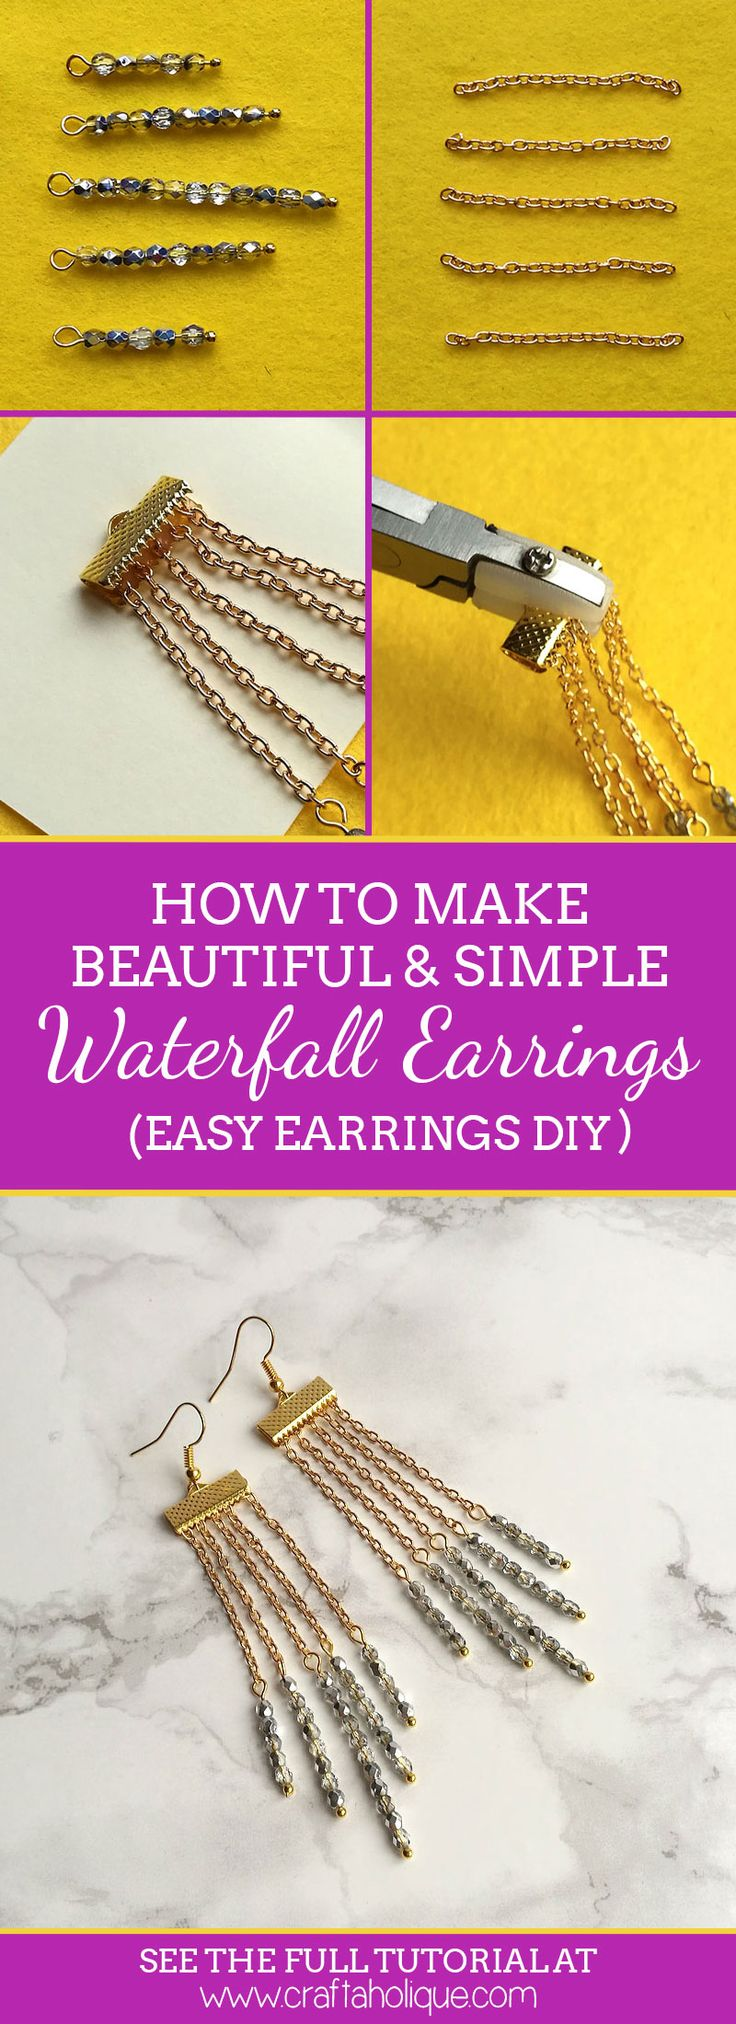 Beautiful waterfall earrings to dress up any outfit! Find out how to make them in this easy earrings tutorial from Craftaholique.